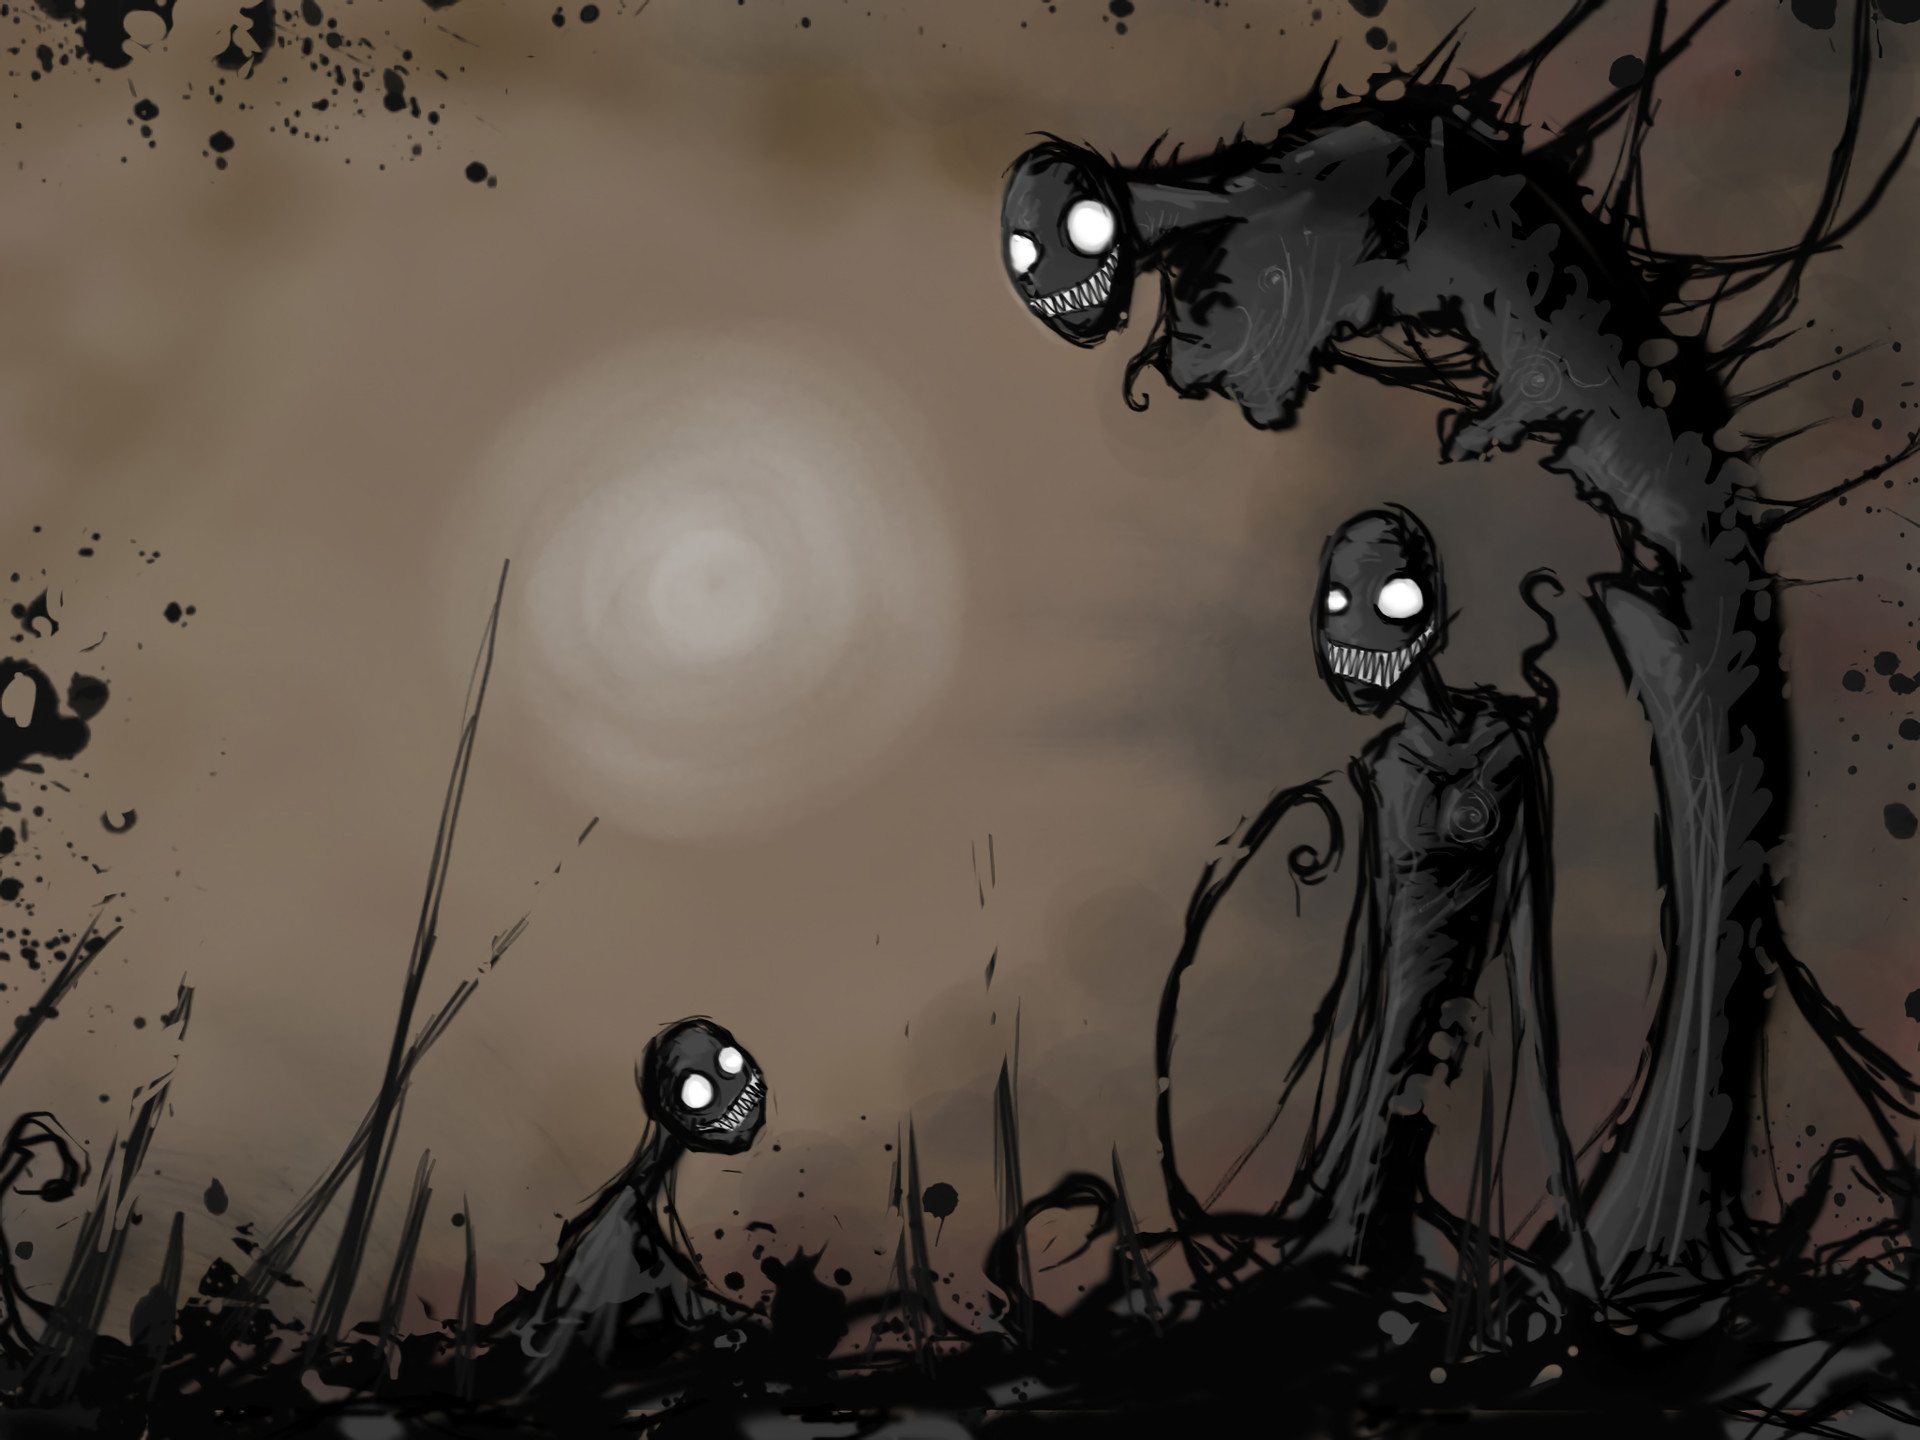 Cool creepy backgrounds